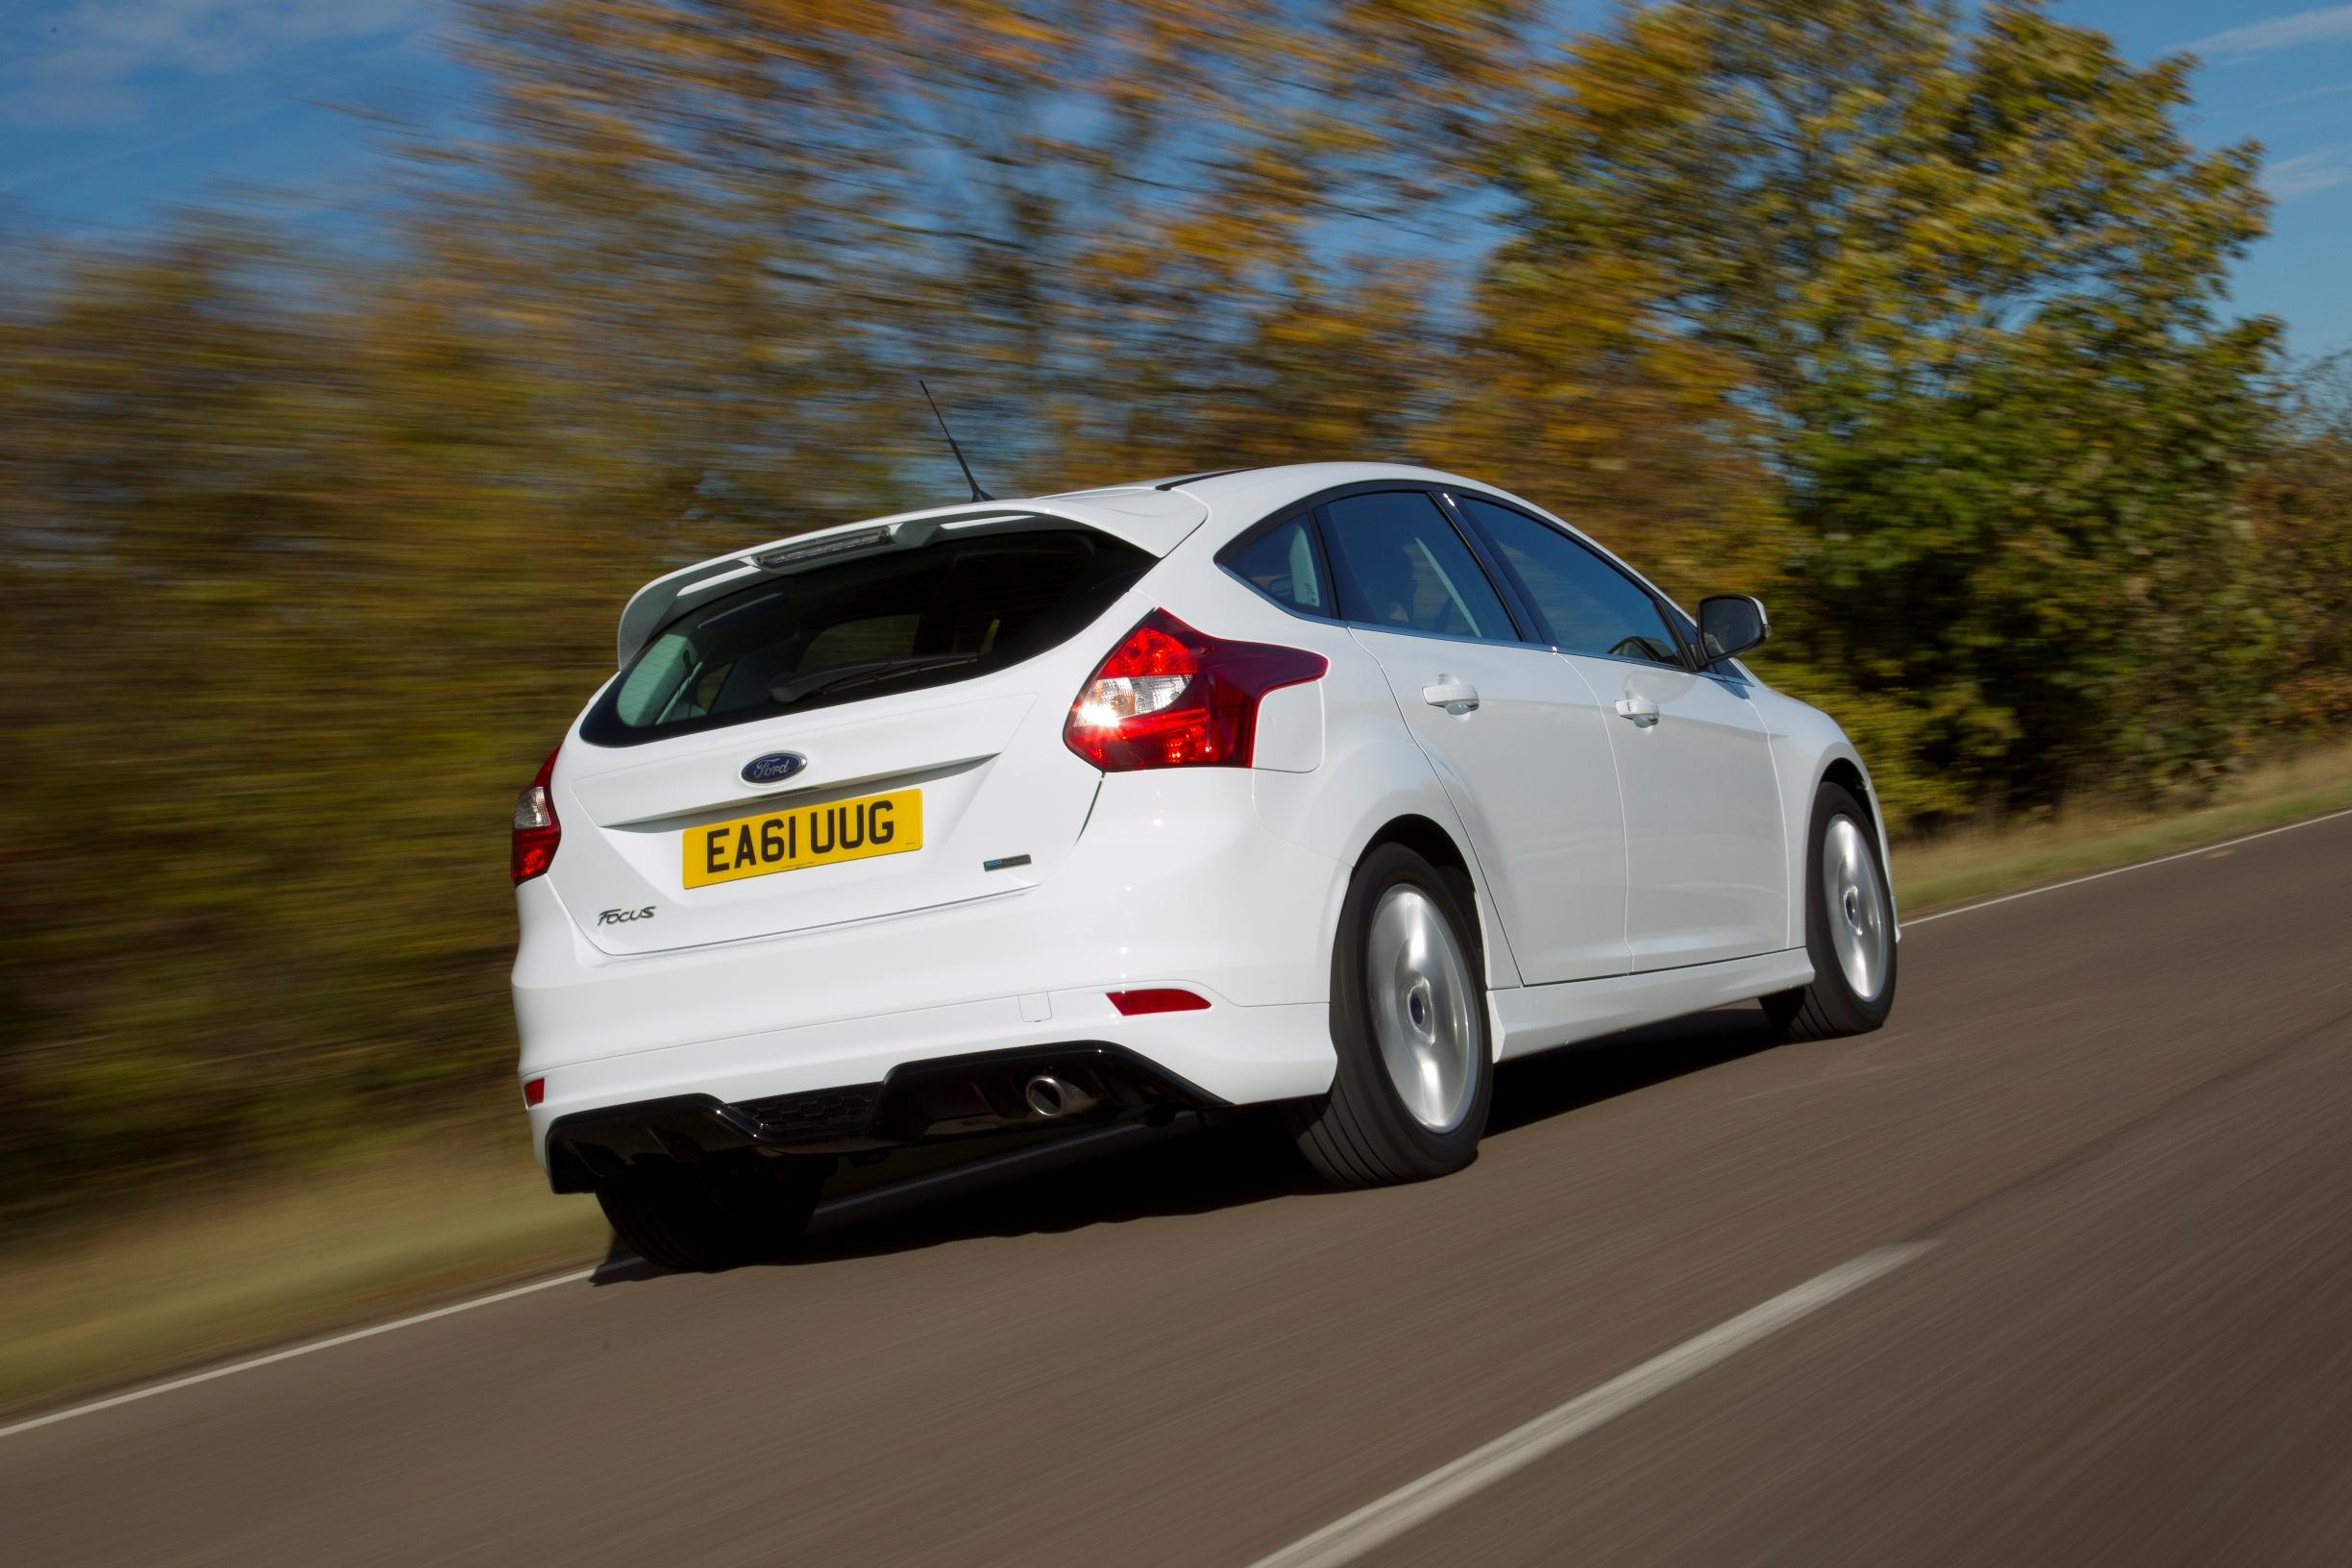 Ford Focus rear view on road